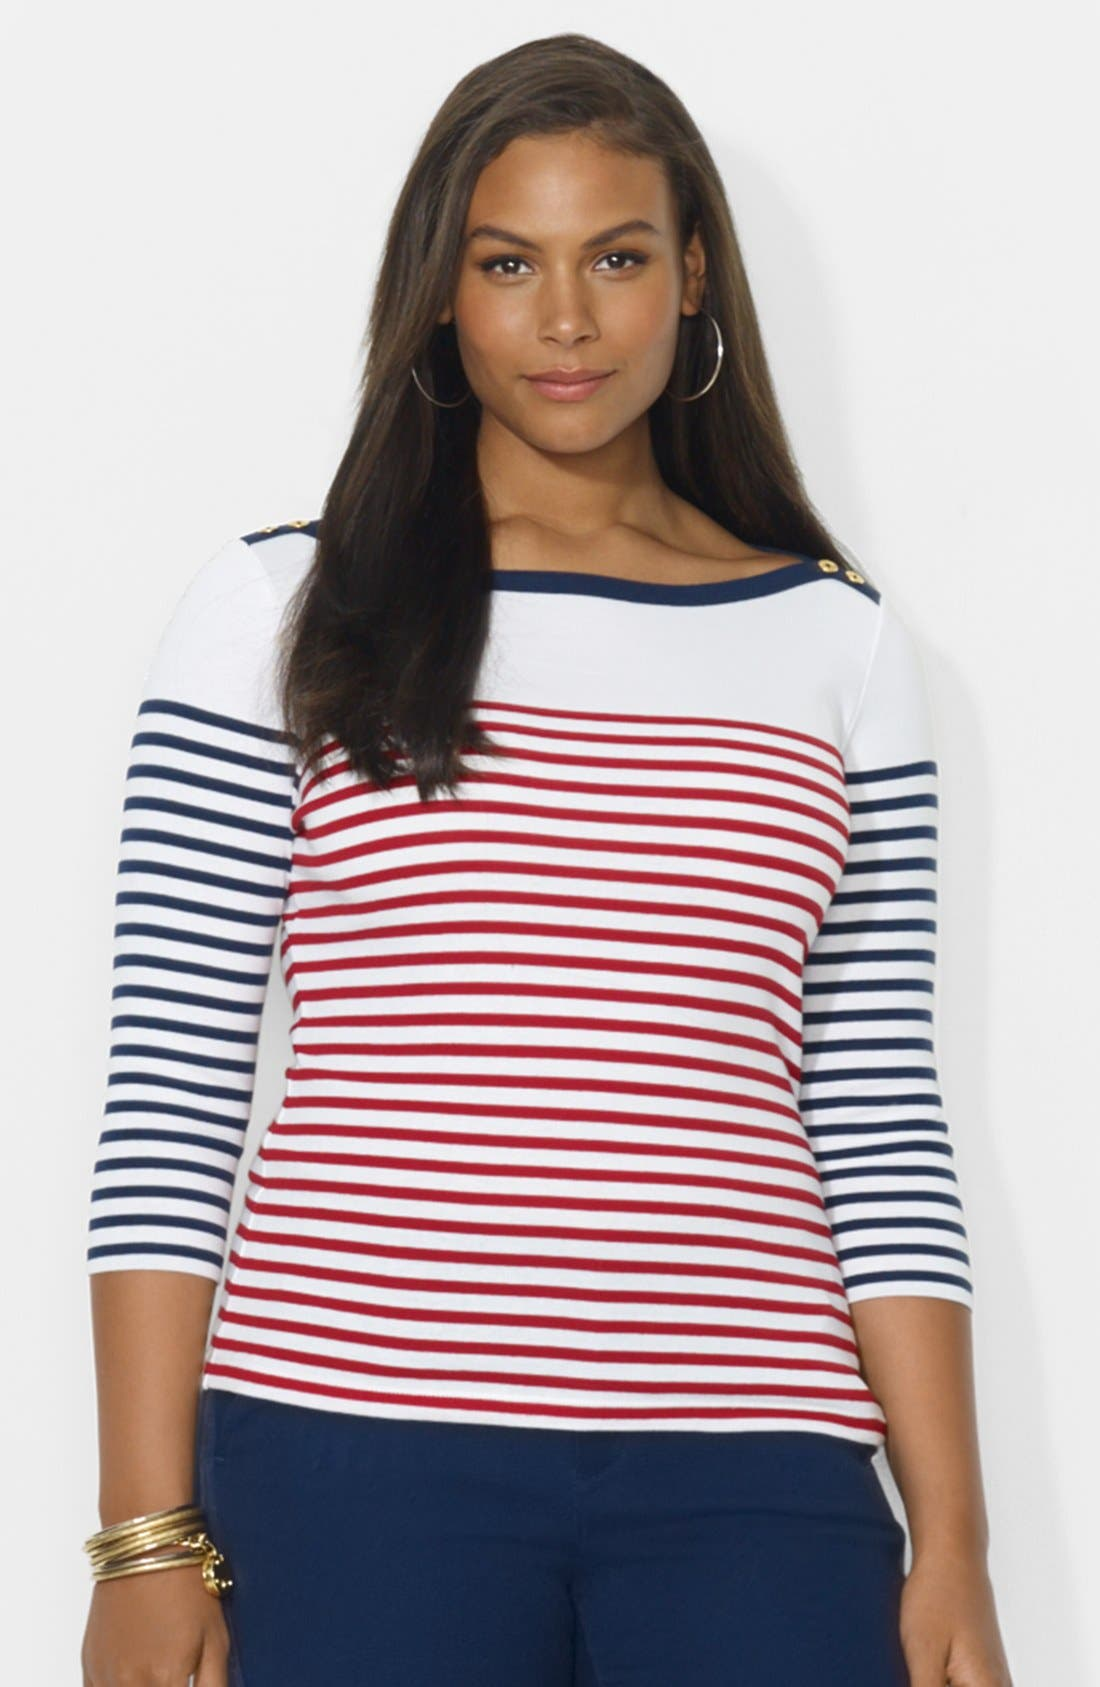 Alternate Image 1 Selected - Lauren Ralph Lauren Contrast Striped Top (Plus Size)